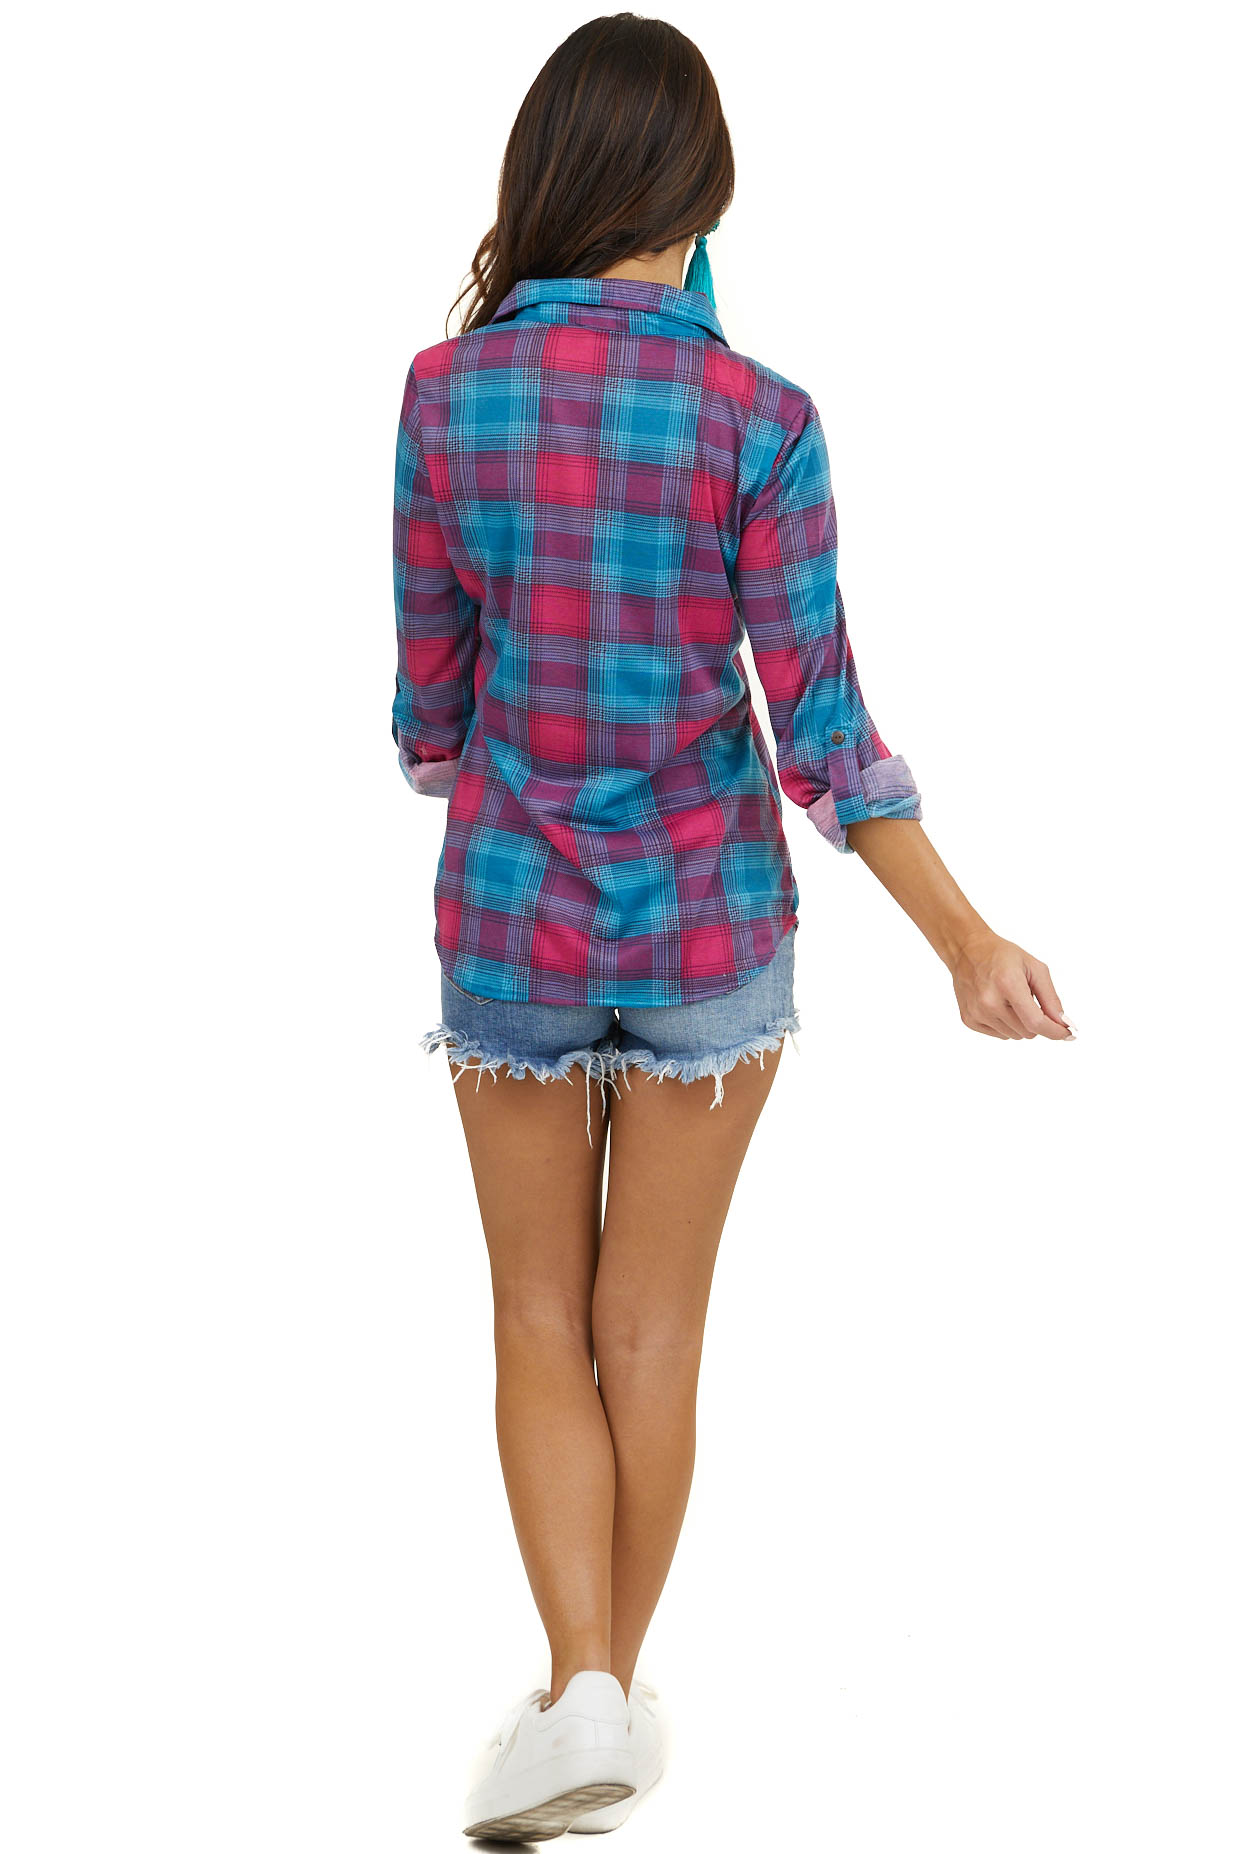 Teal and Fuchsia Plaid Button Up Top with Chest Pockets